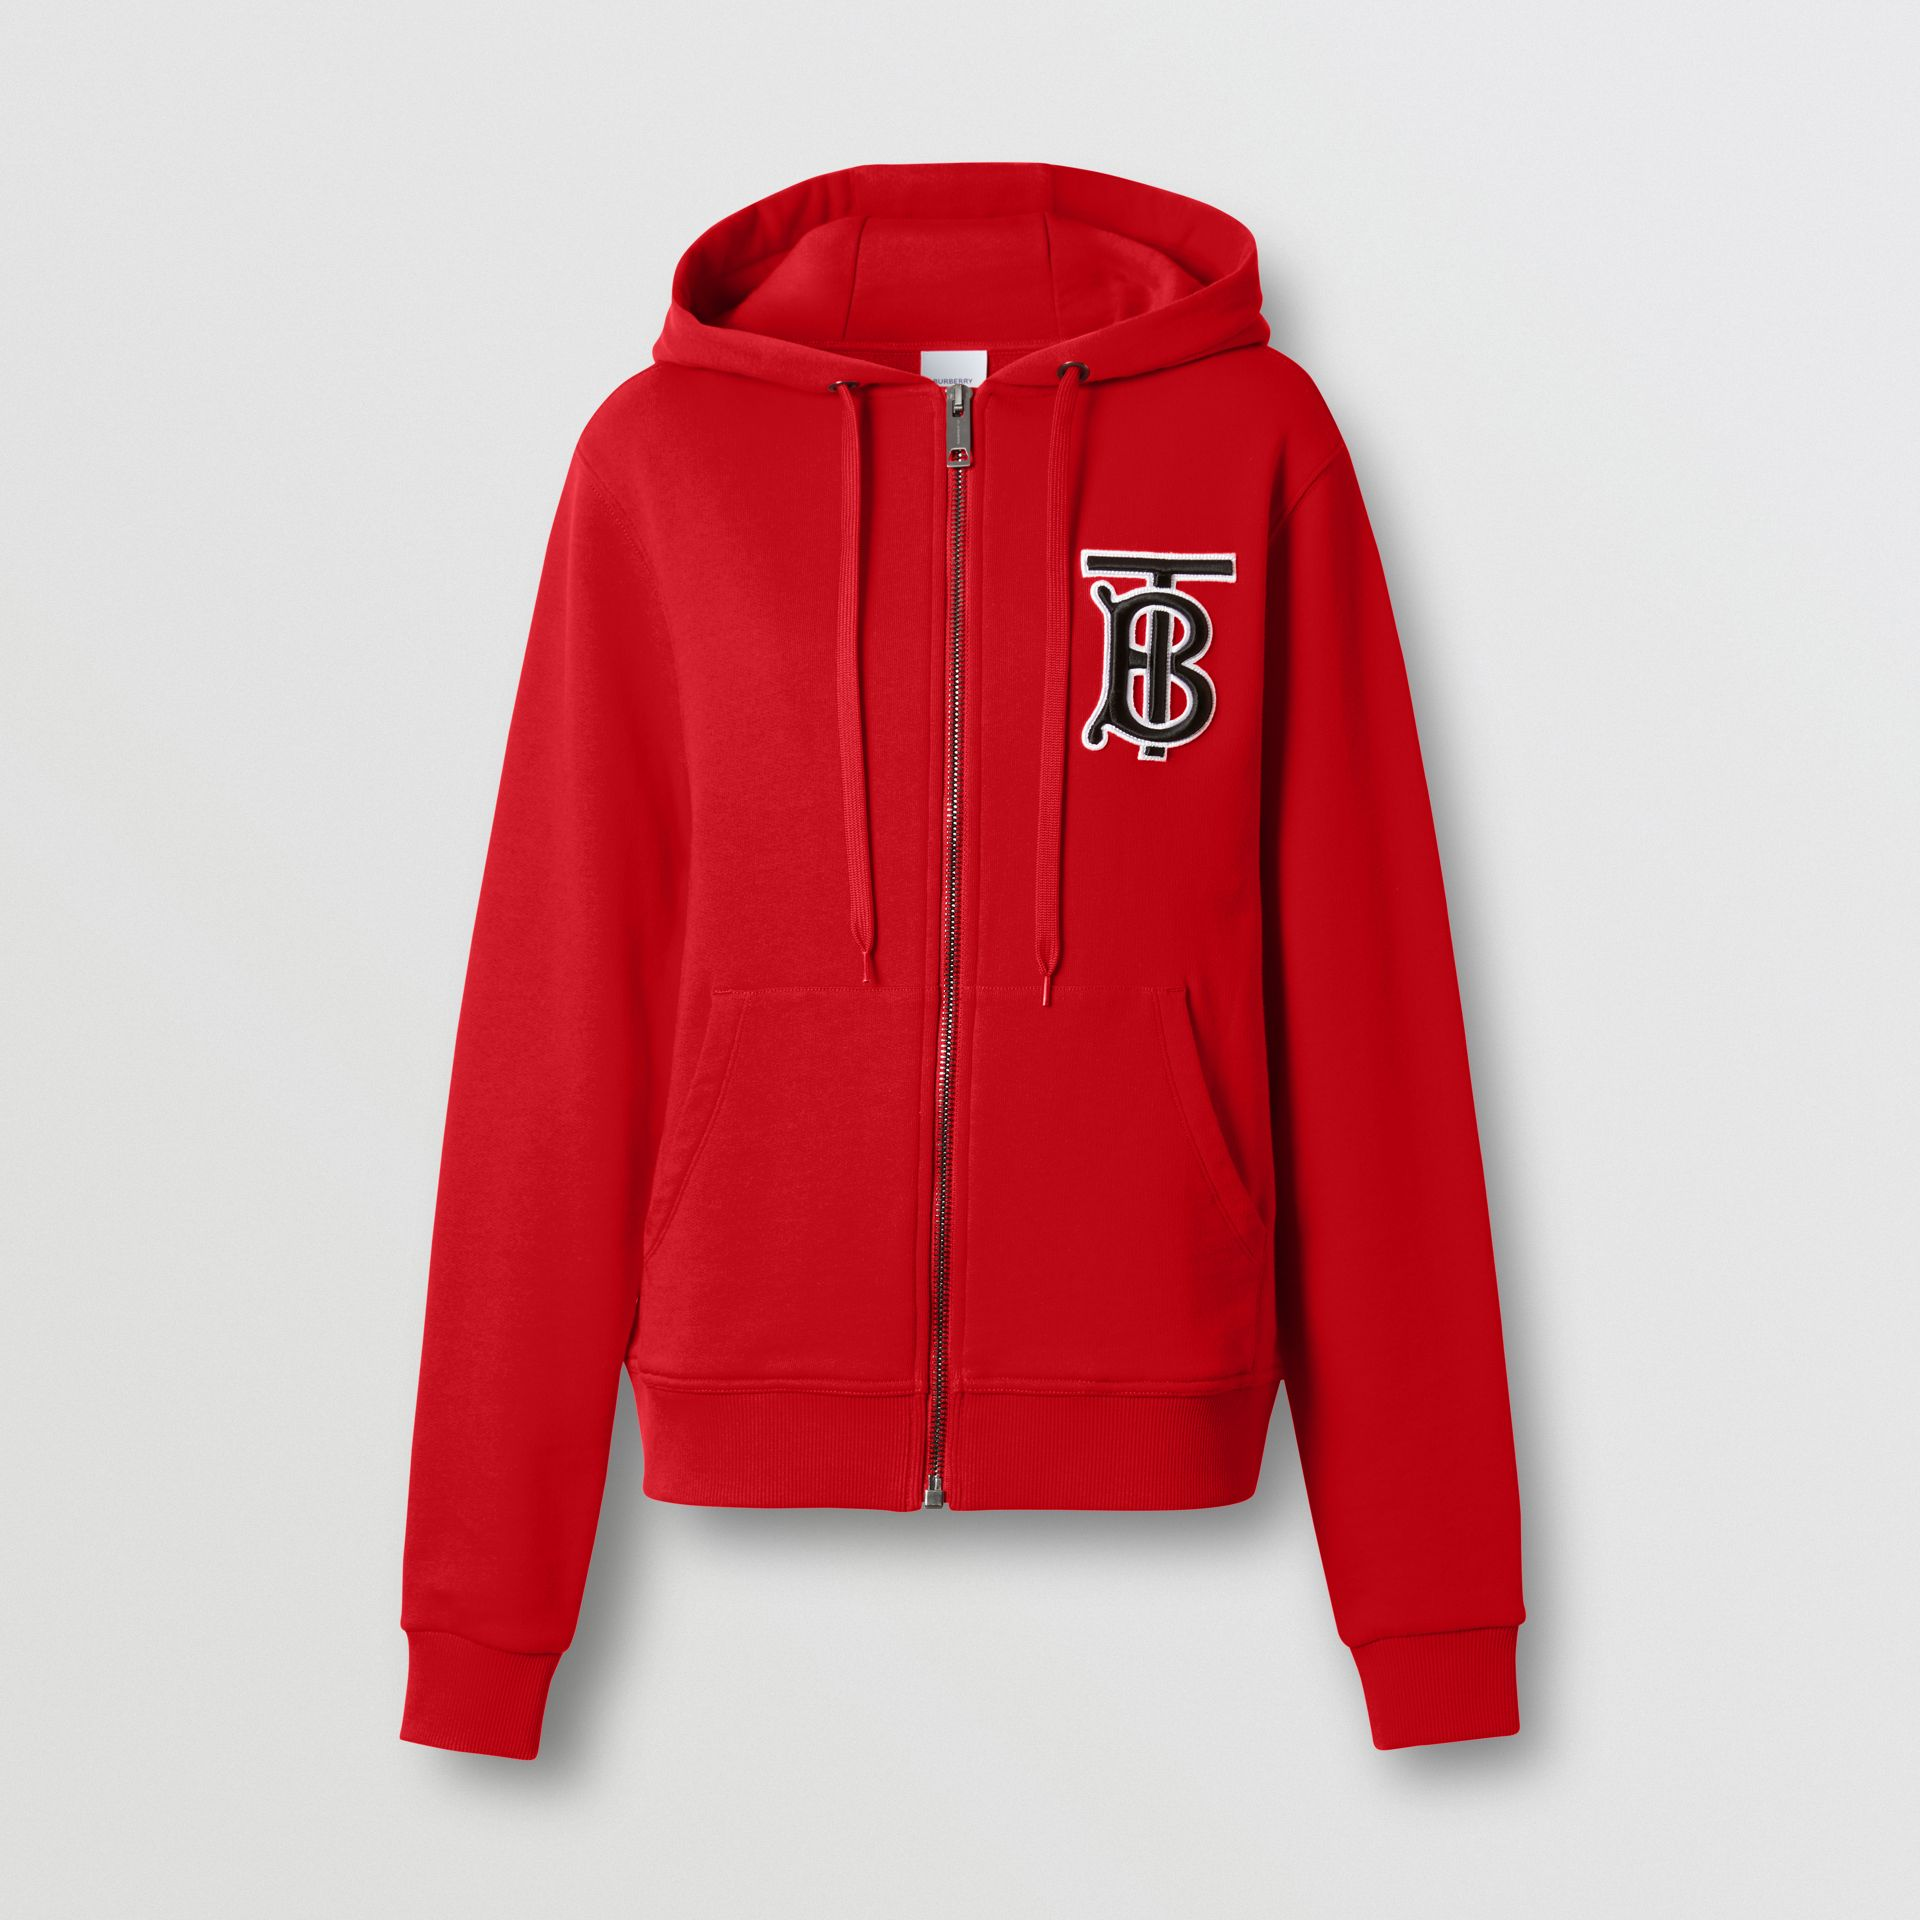 Monogram Motif Cotton Oversized Hooded Top in Bright Red - Women | Burberry - gallery image 3